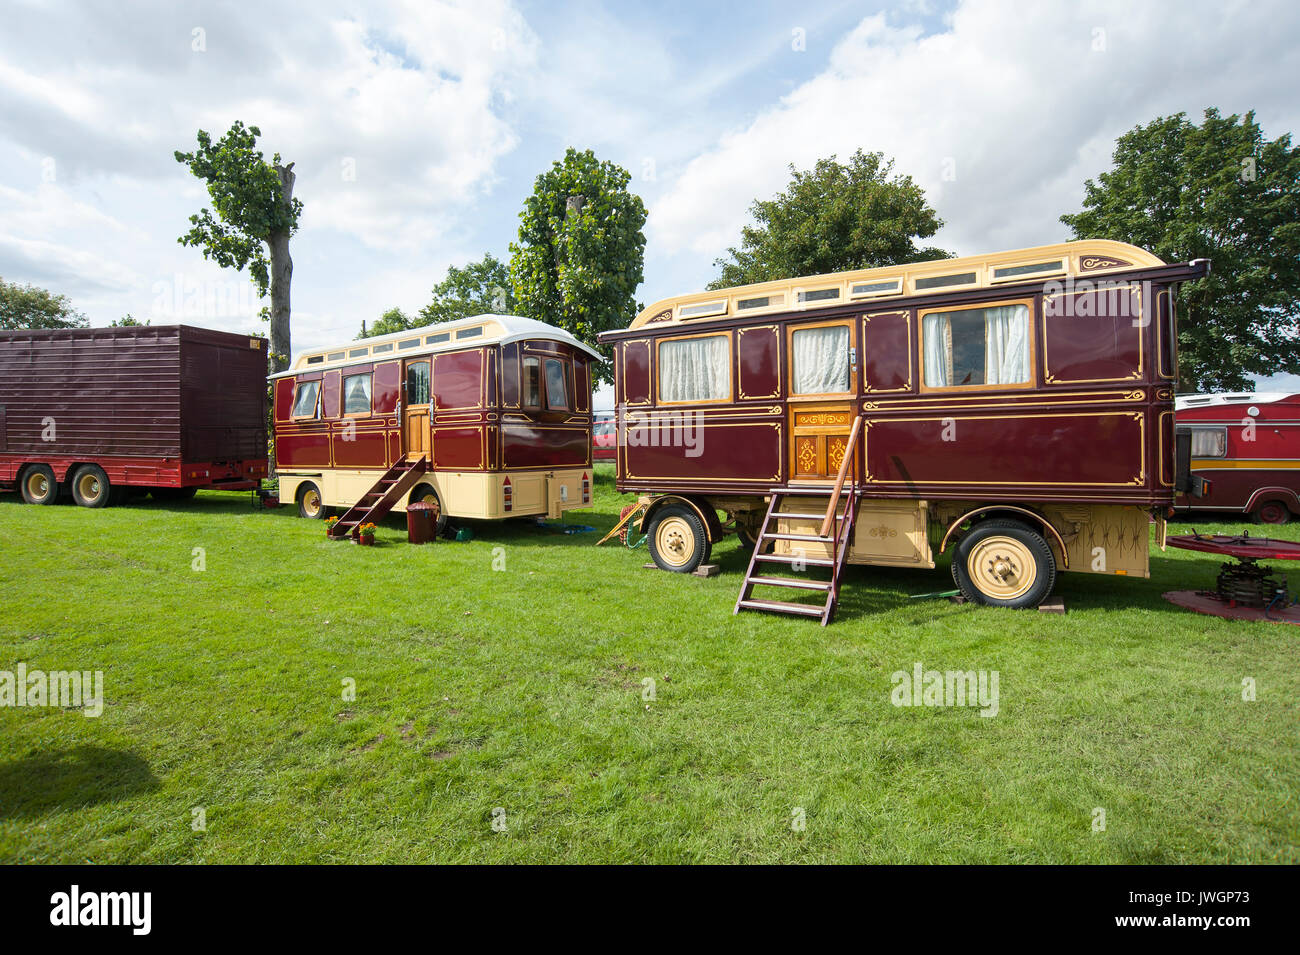 Vintage Showman's Caravans at Driffield Steam and Vintage Rally in the East Riding of Yorkshire, England, UK - Stock Image